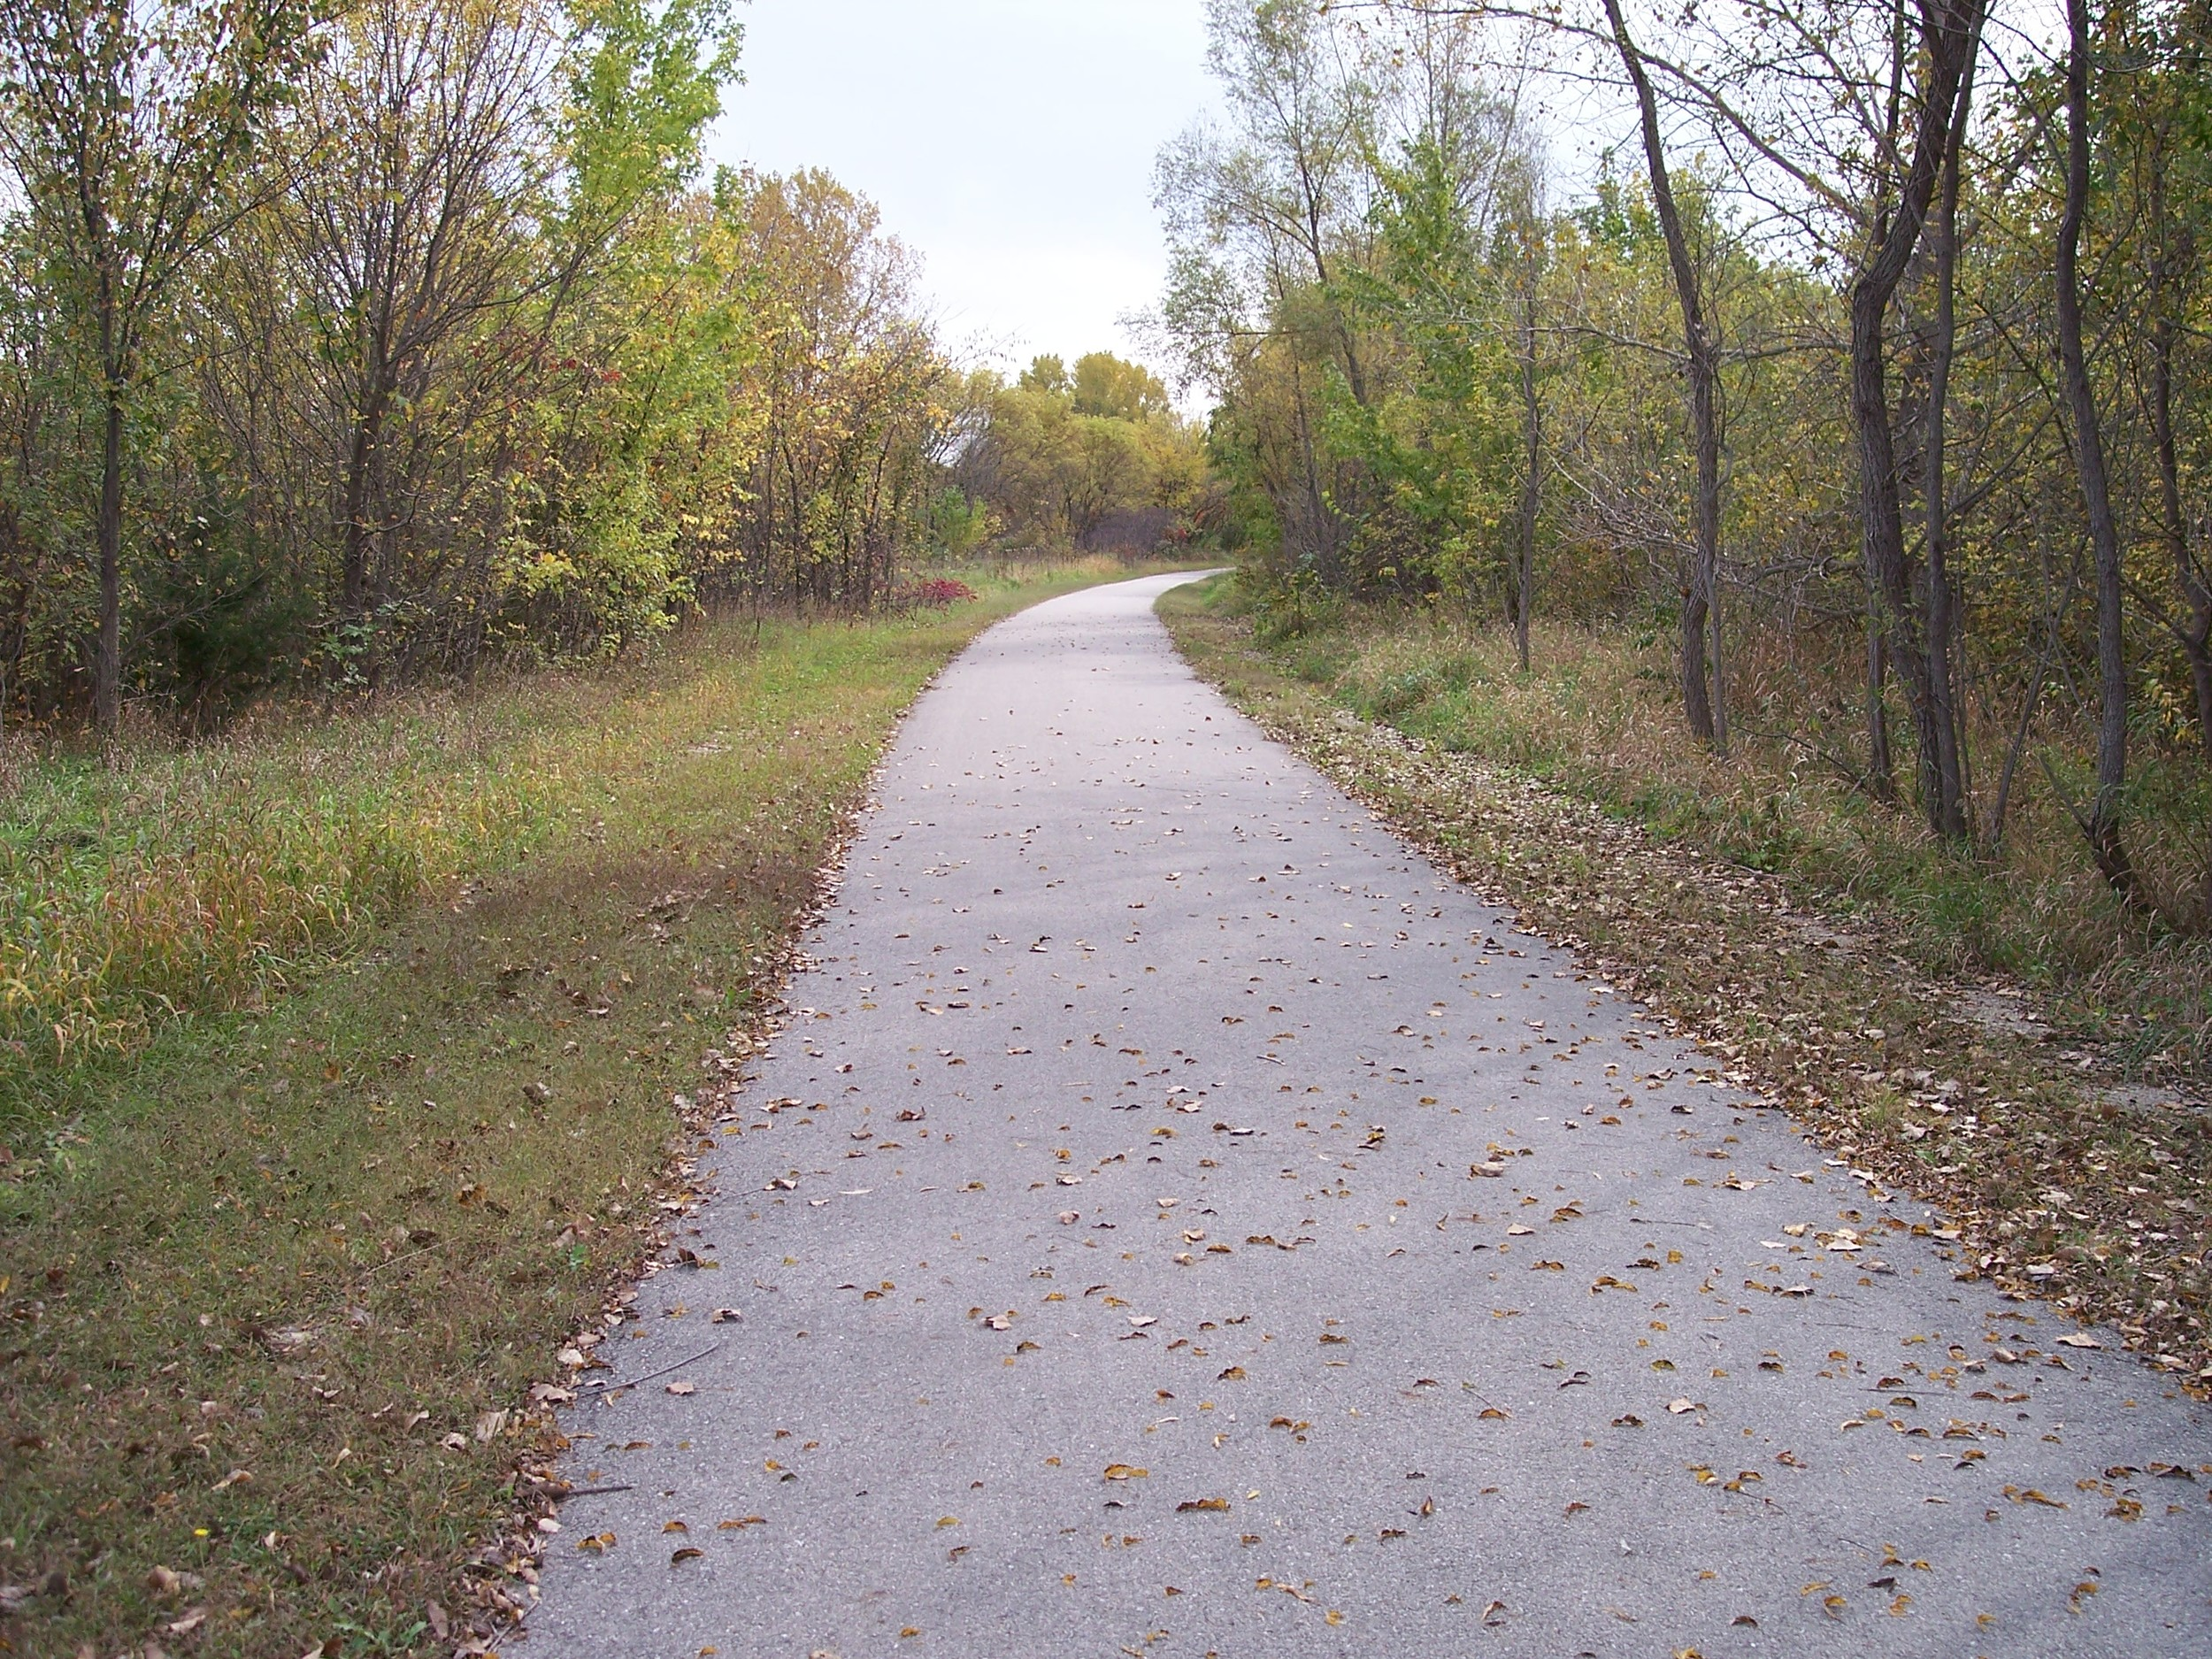 """Great Western Trail Iowa"" by Tim Kiser. Licensed under CC BY-SA 2.5 via Wikimedia Commons"